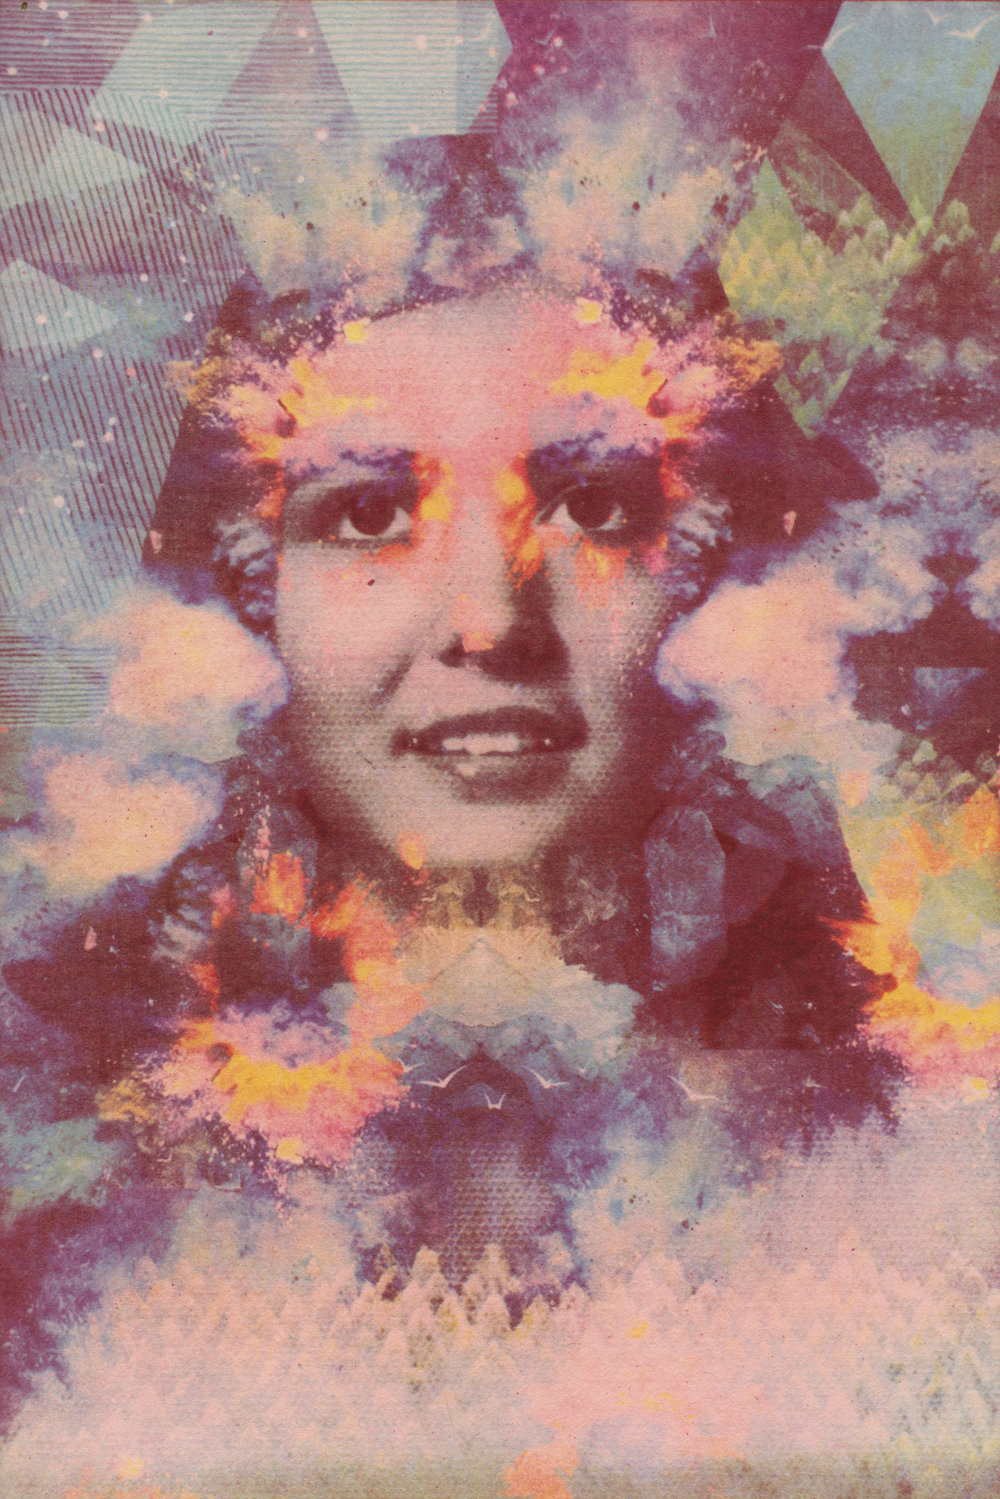 The Celestial_12:2013_Gum Bichromate Print9X6 Inches_Sharp  Print .jpg